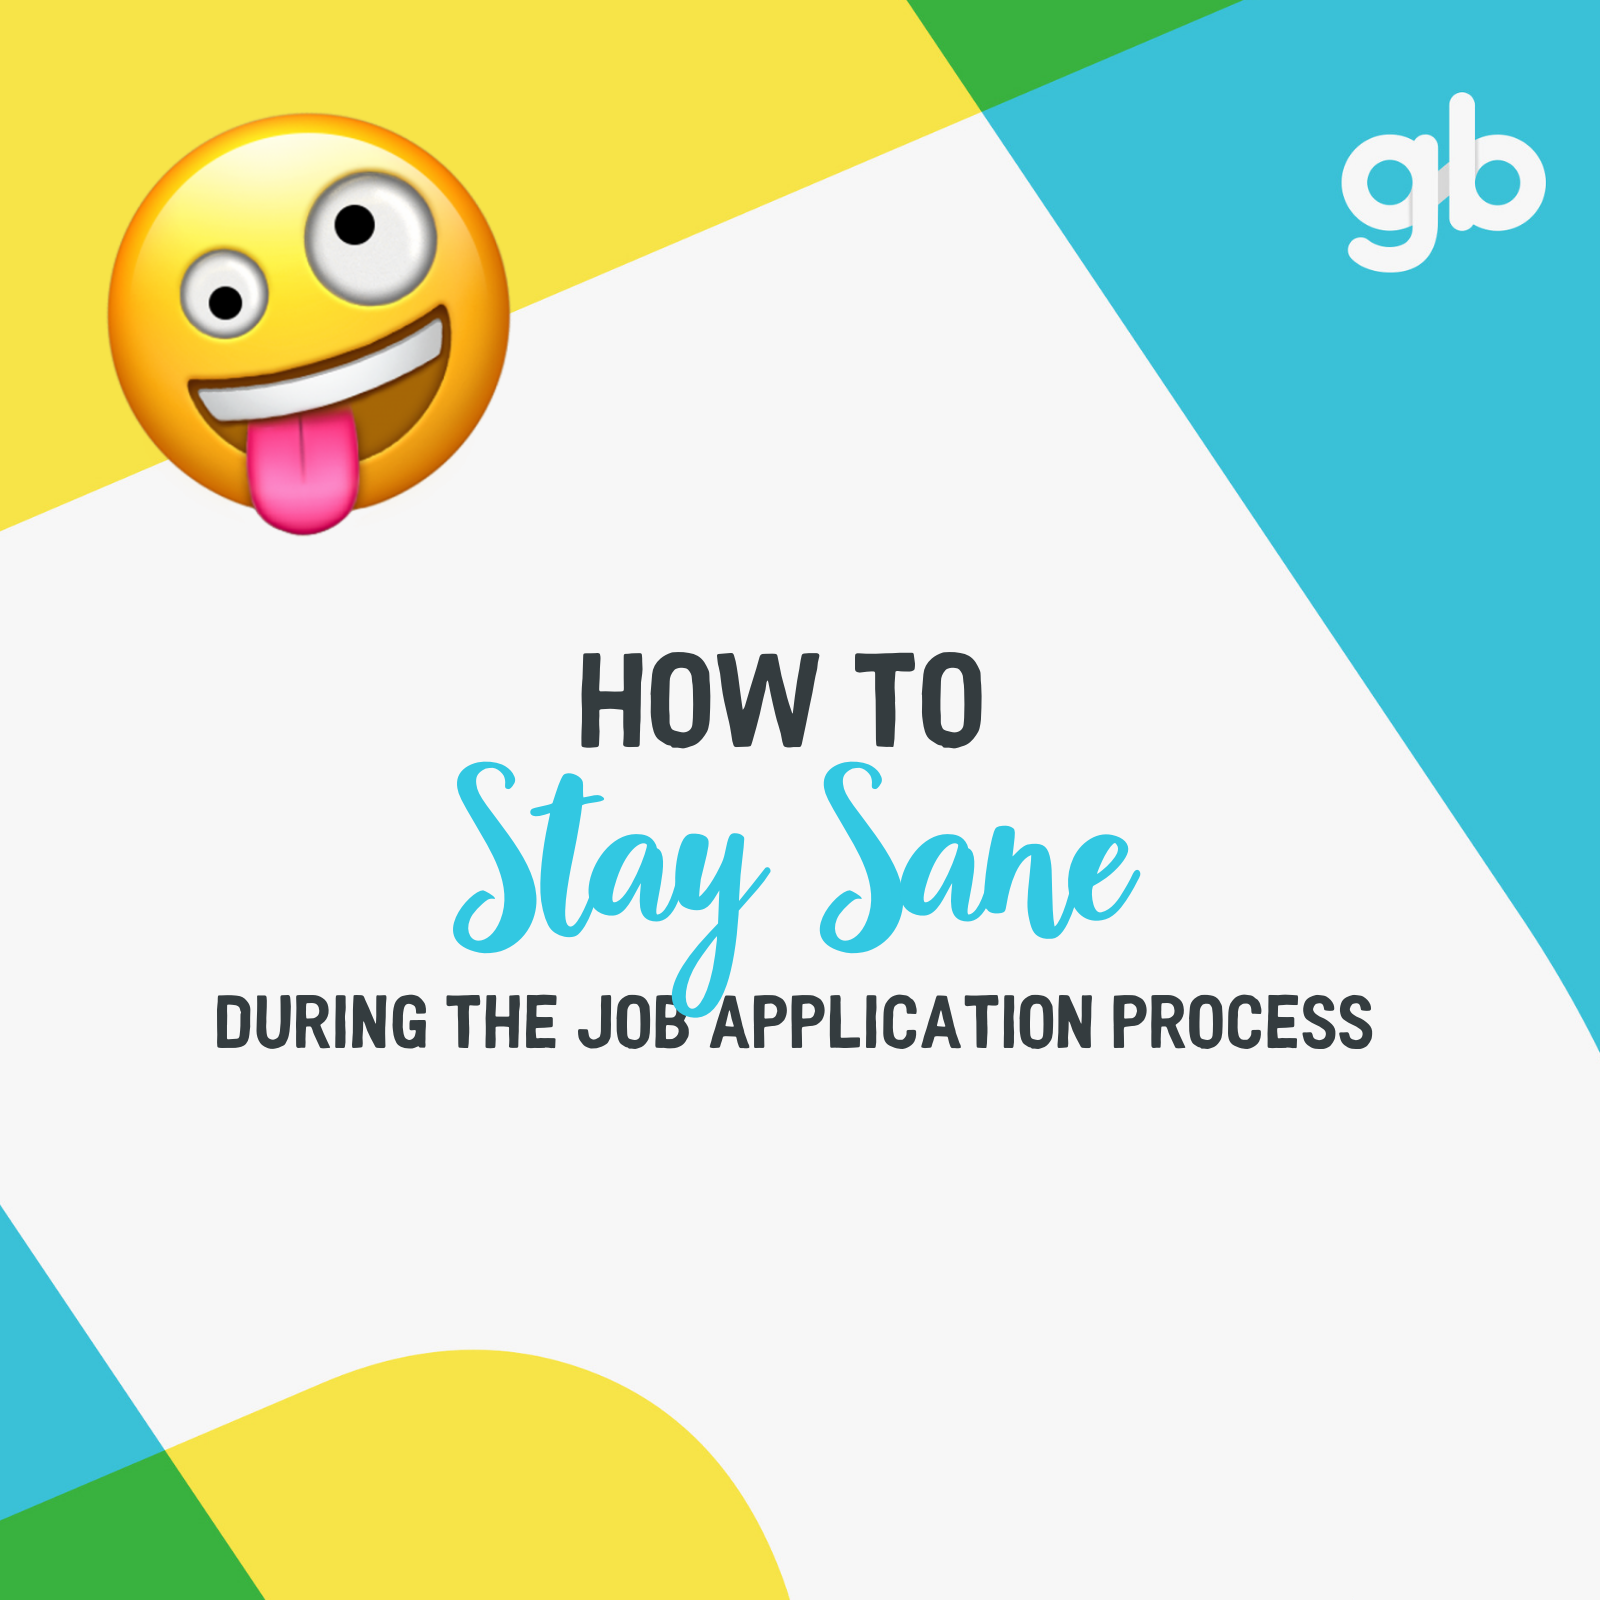 #12. The application process can be tough for a new freelancer. Without proper preparation and self-care, it can leave you feeling discouraged, stressed, even burned out. To squeeze the most out of your applications, here are our tips for staying sane during the process. -